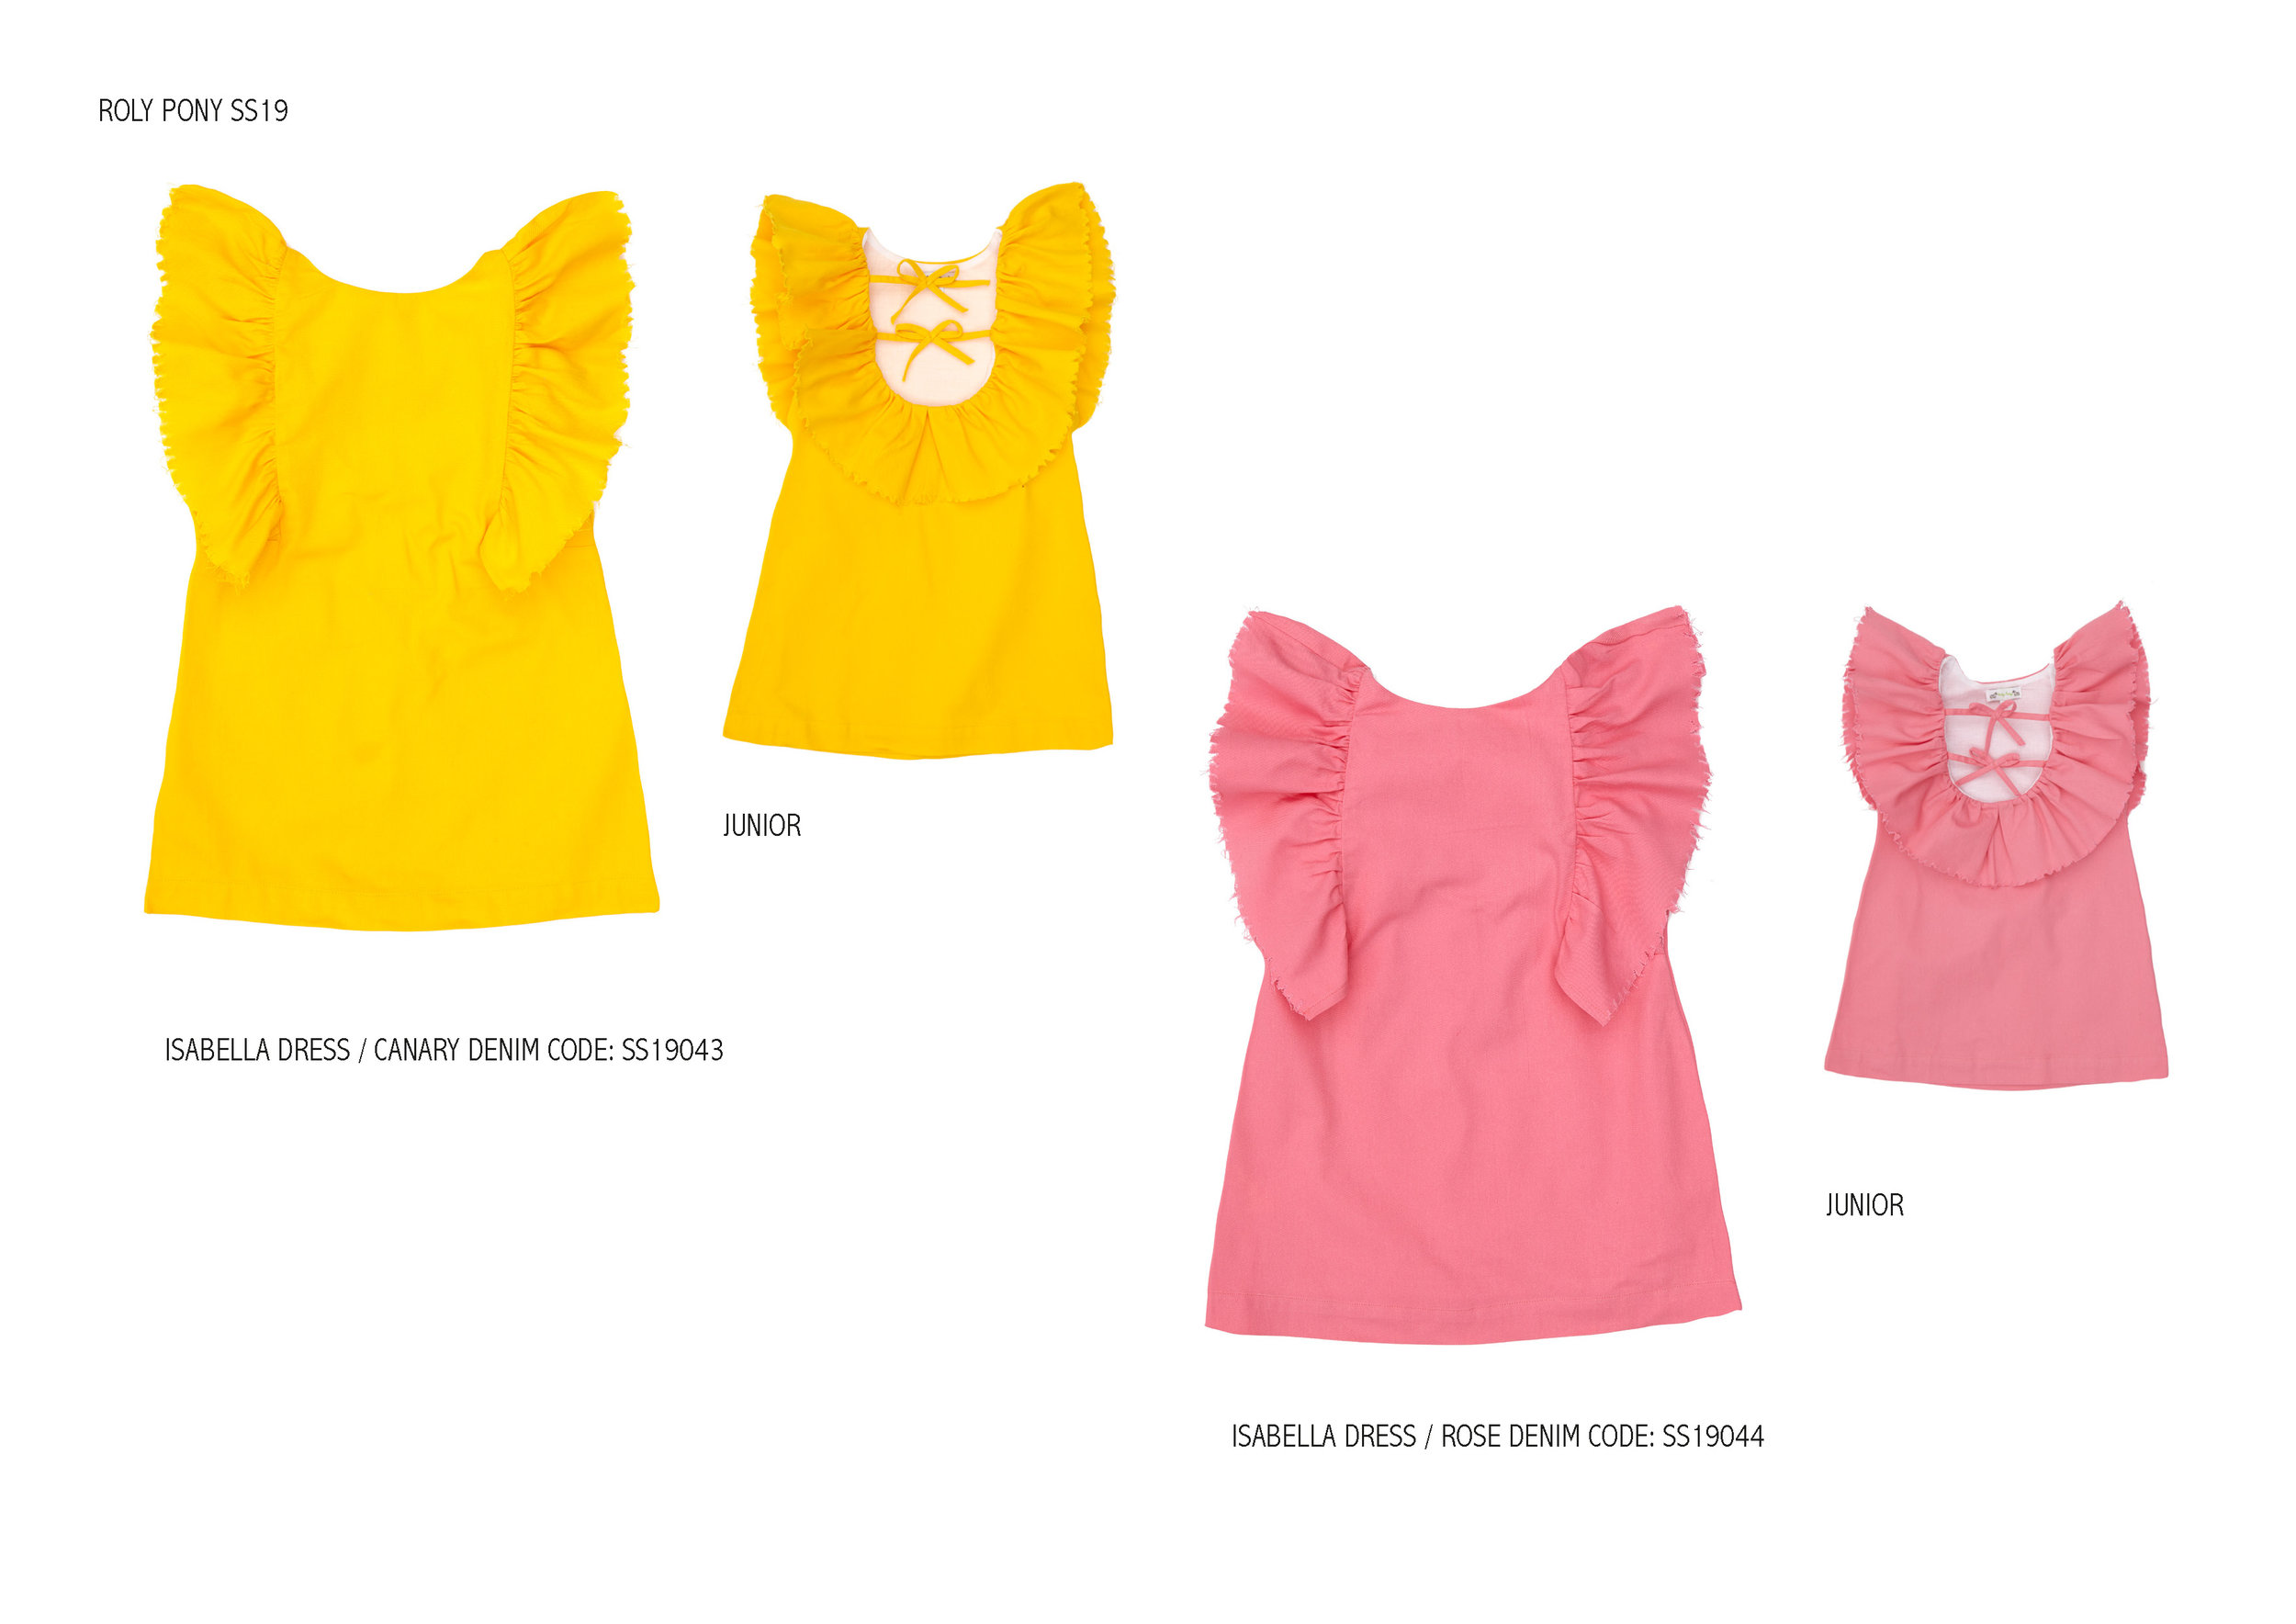 RP SS19 CATALOGUE 20 July 2018_Page_23.jpg